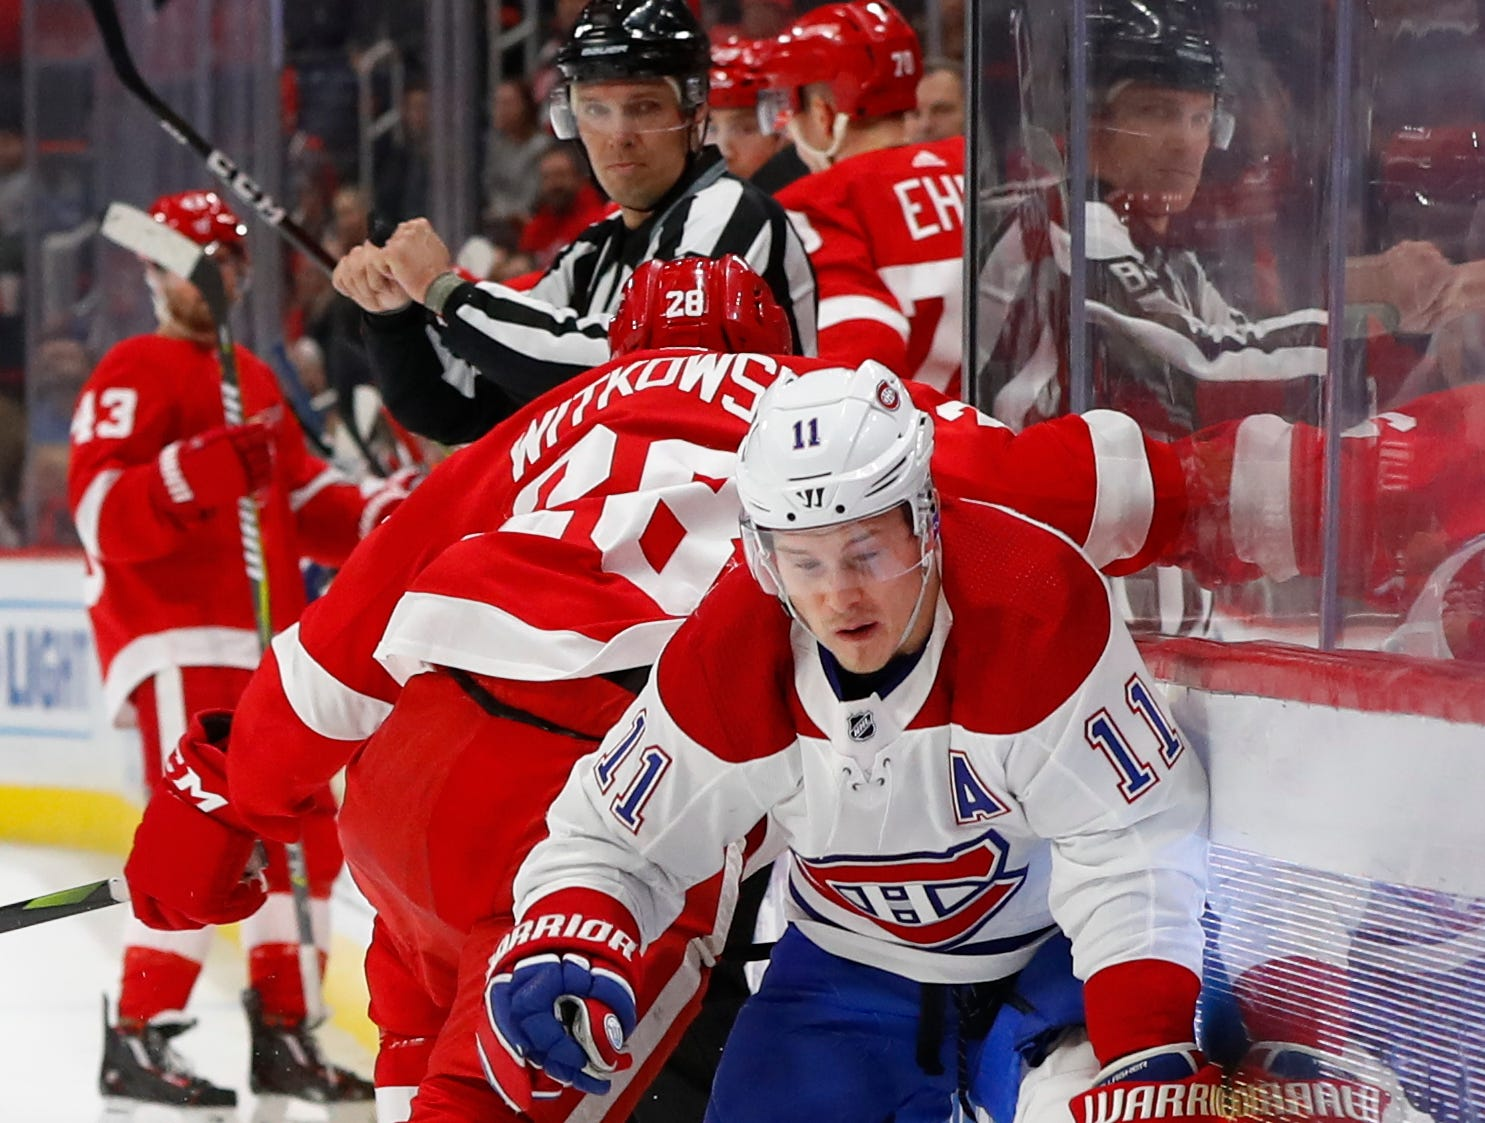 Montreal Canadiens right wing Brendan Gallagher (11) avoids the check of Detroit Red Wings right wing Luke Witkowski (28) in the first period.